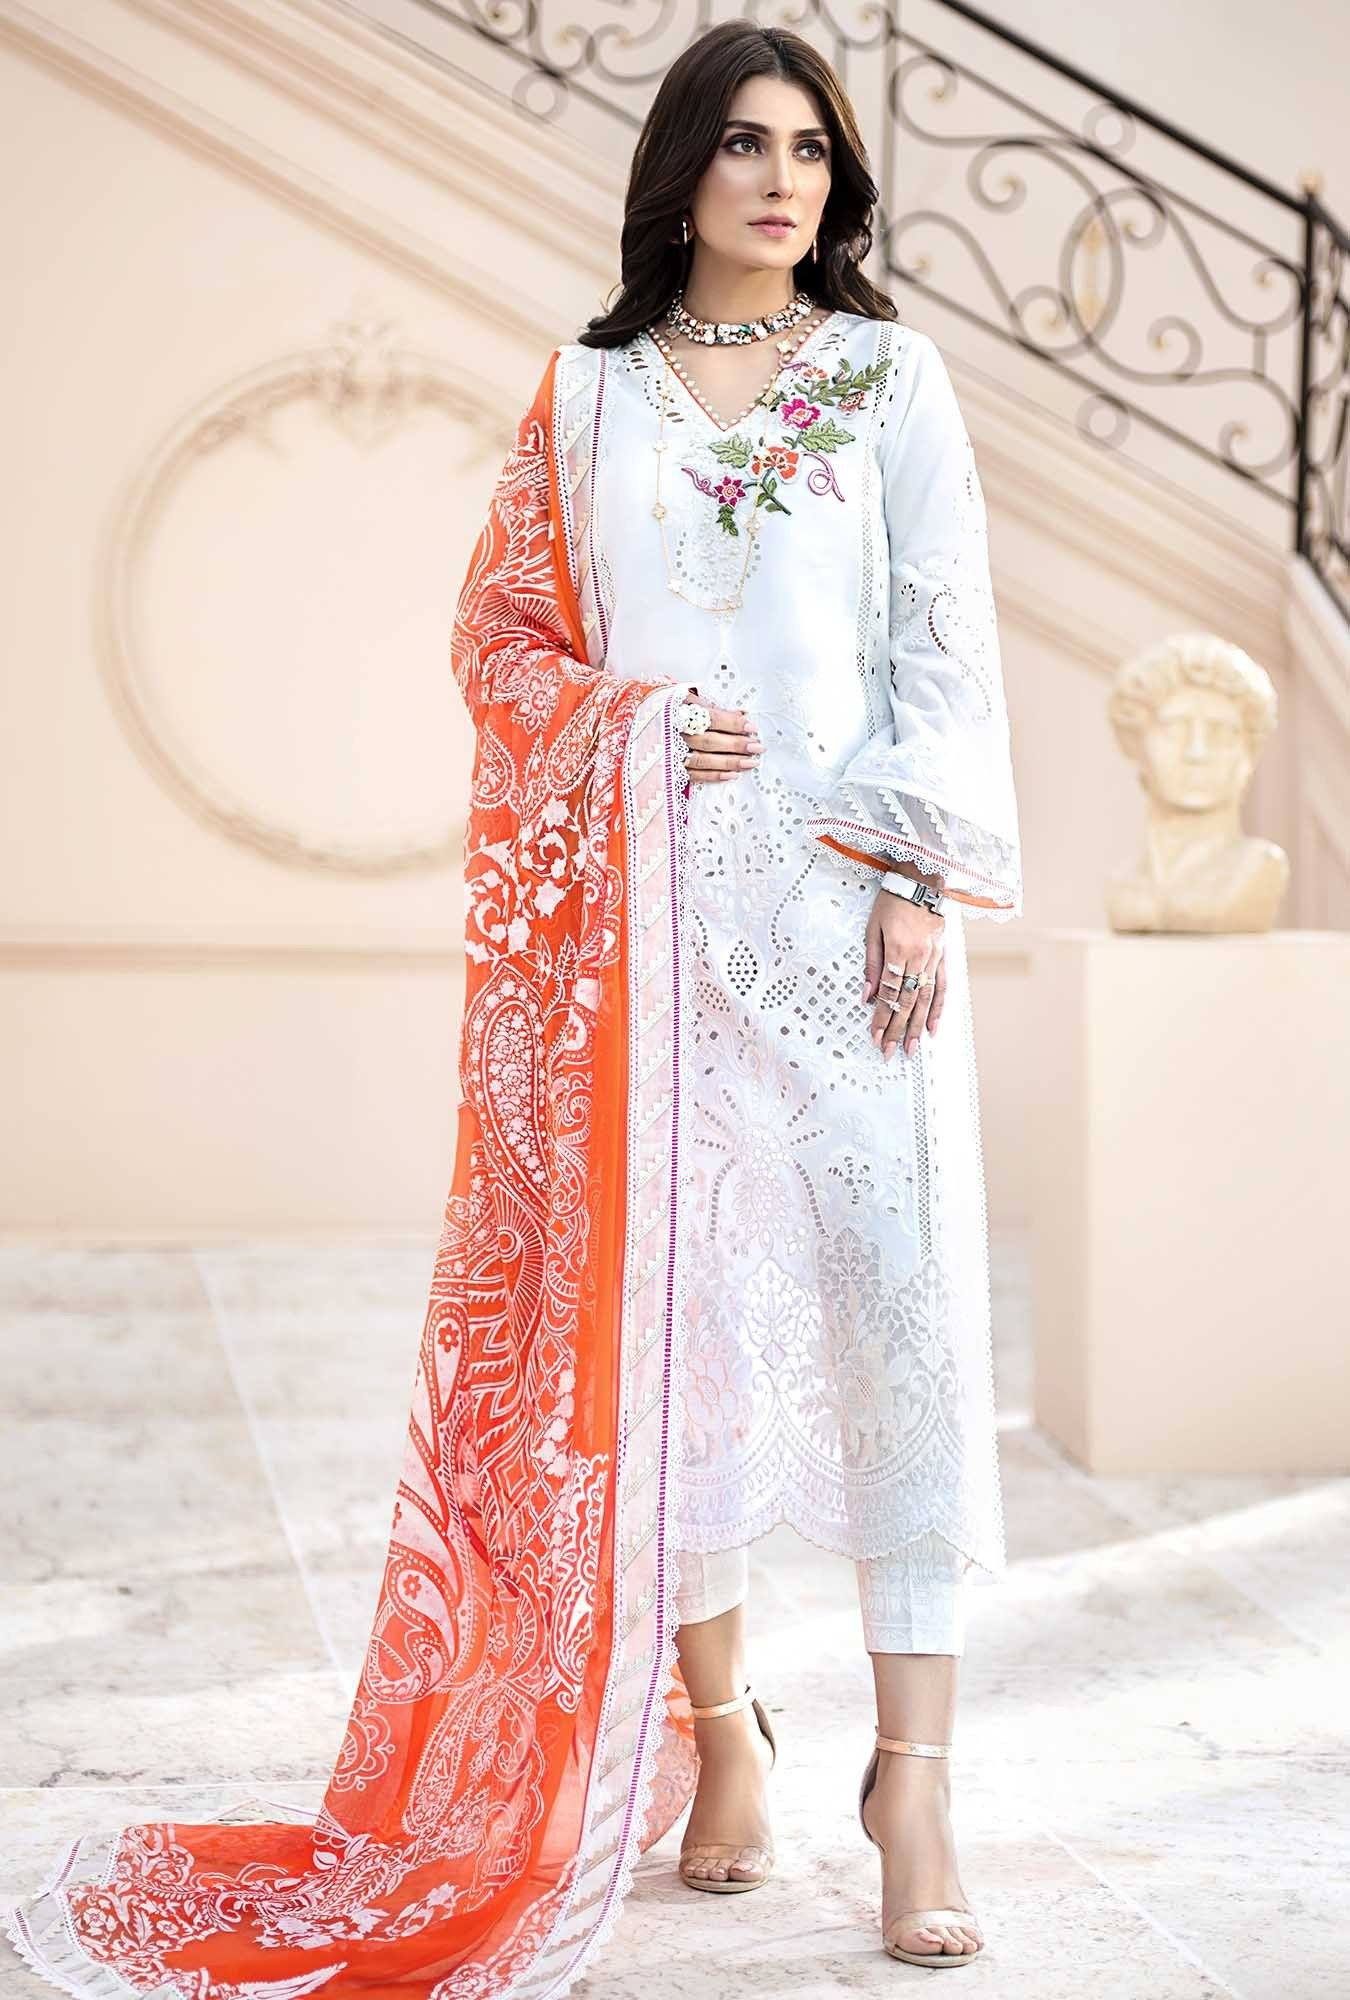 Noor white (Pre-booking)-Embroidered 3pc lawn chicken kari dress with printed chiffon dupatta. - gracestore.pk